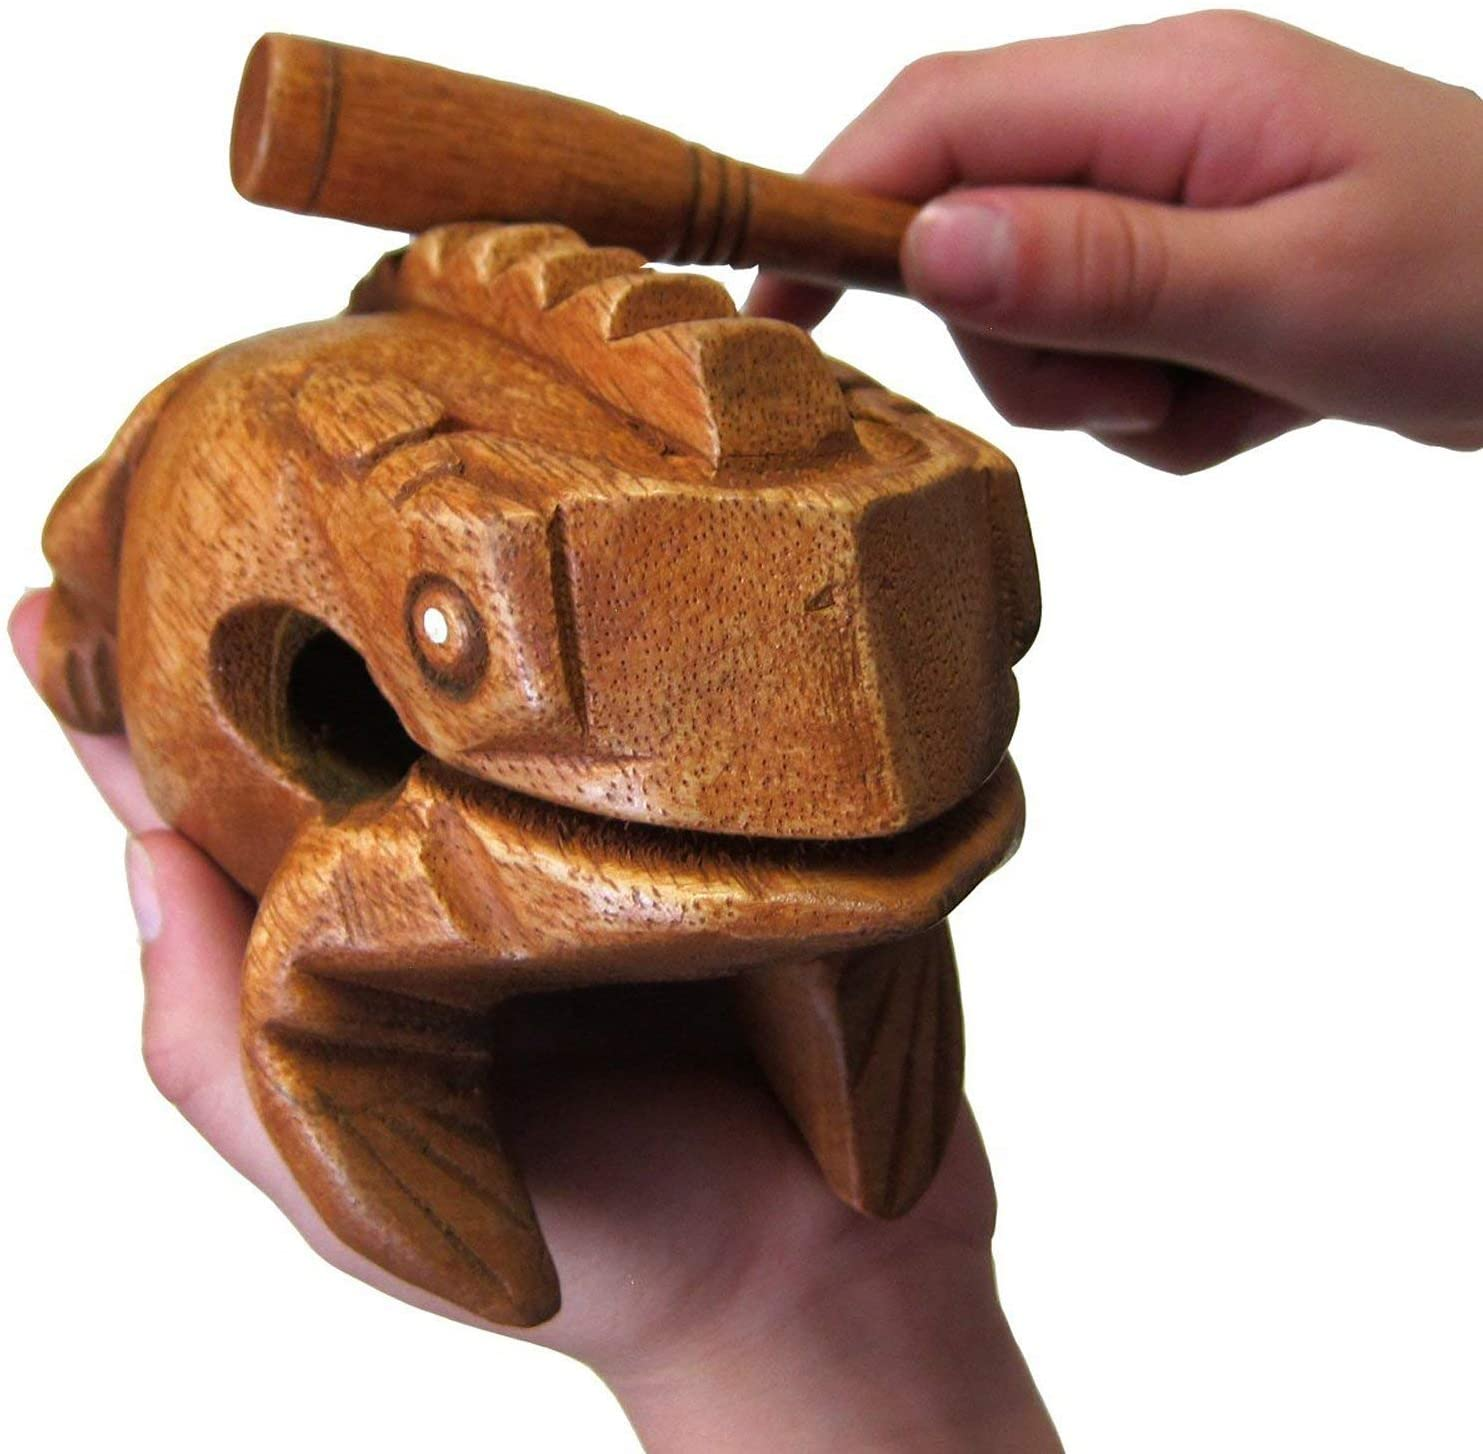 """Deluxe Large 6"""" Wood Frog Guiro Rasp - Musical Instrument Tone Block - by World Percussion USA"""